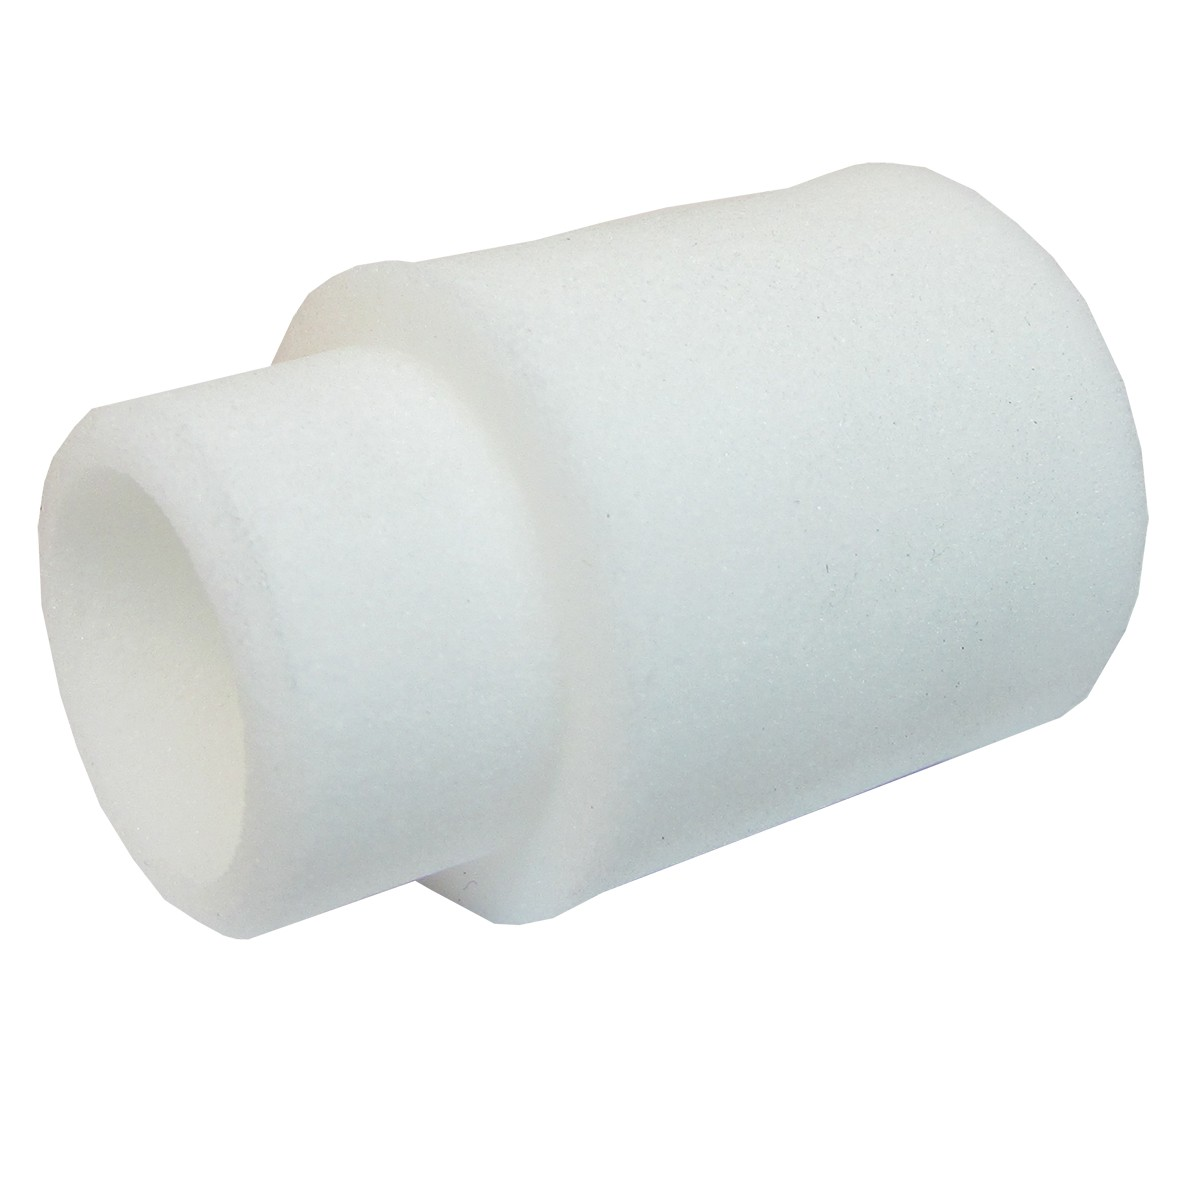 Indutherm Vacuum Filter Element Only For MC Units 25mm X 36mm